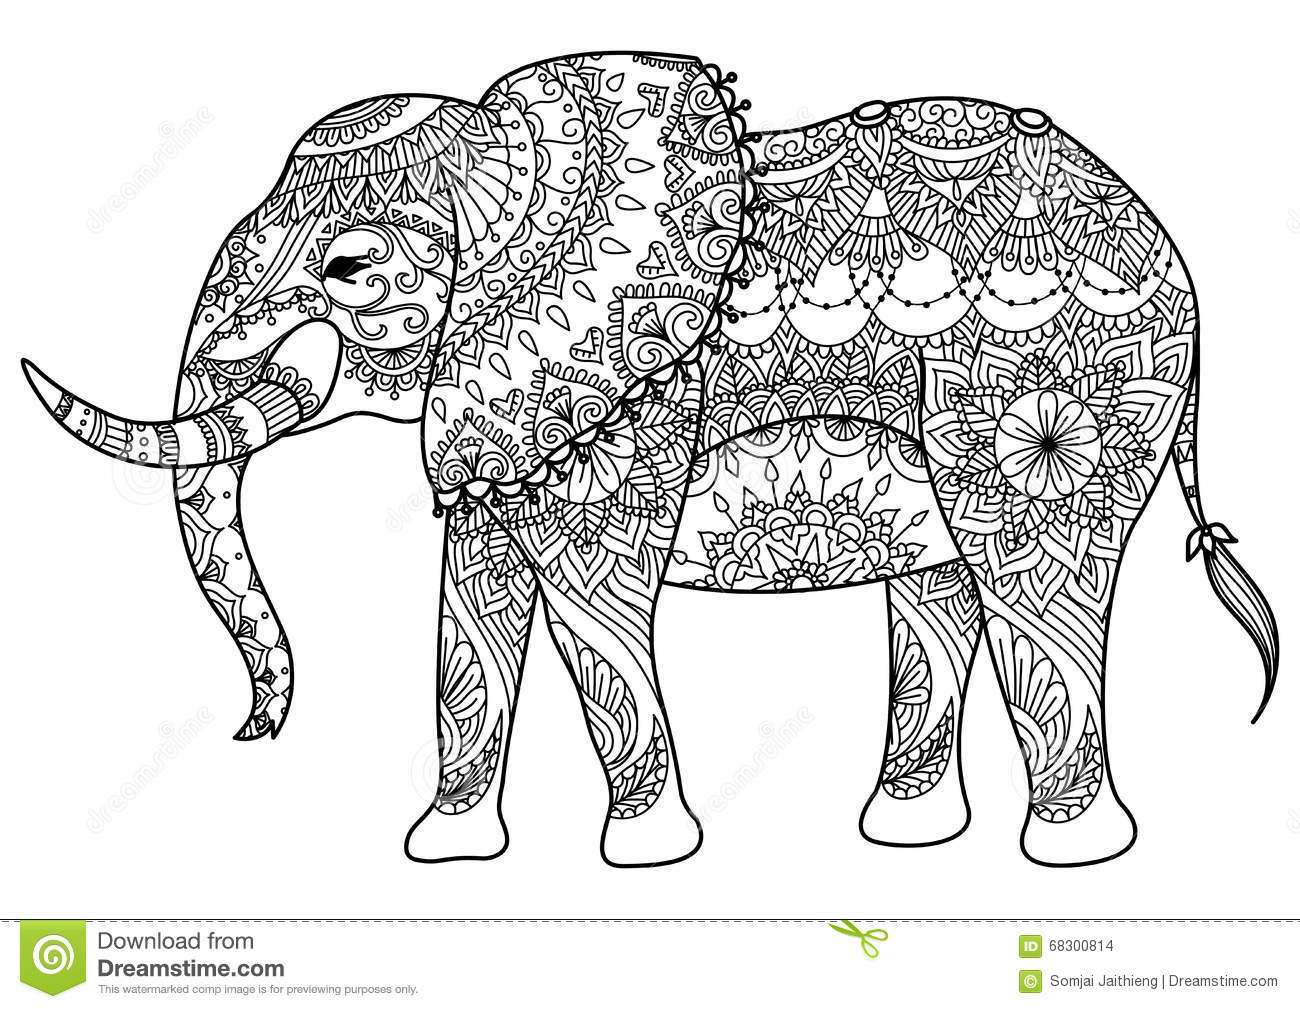 mandala elephant mandada line art design coloring book element design 68300814